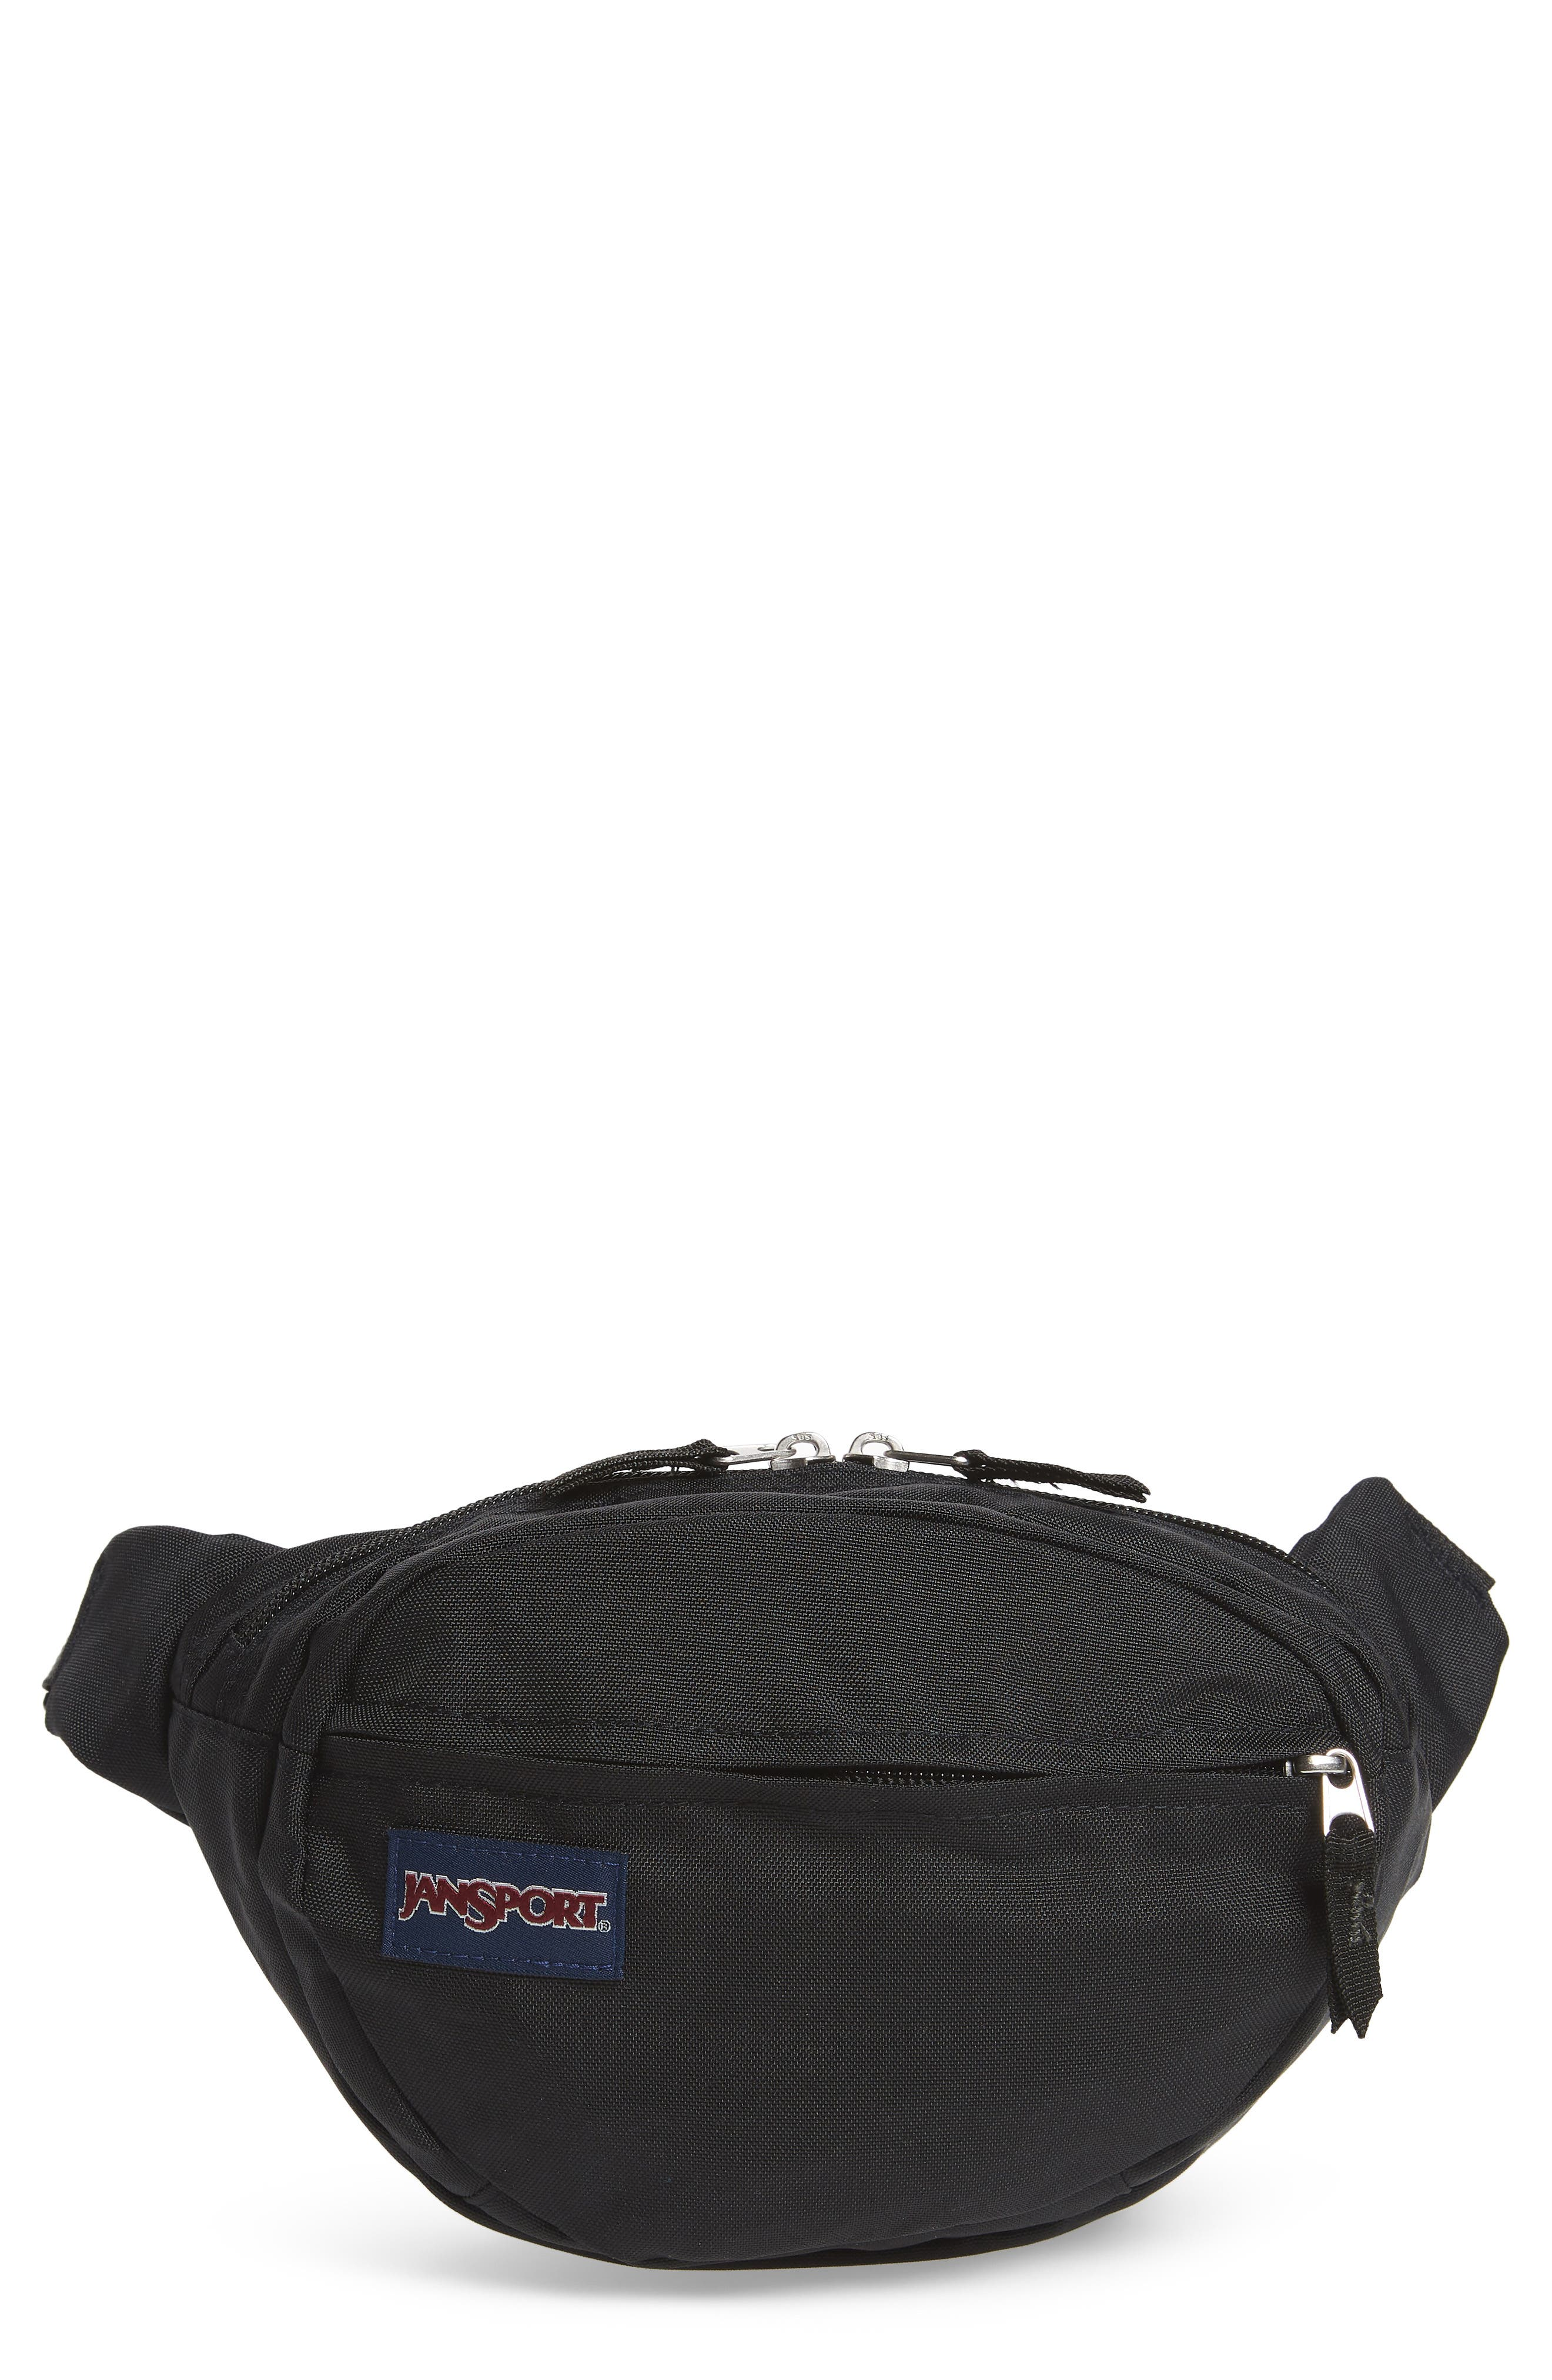 Fifth Avenue Hip Pack,                         Main,                         color,